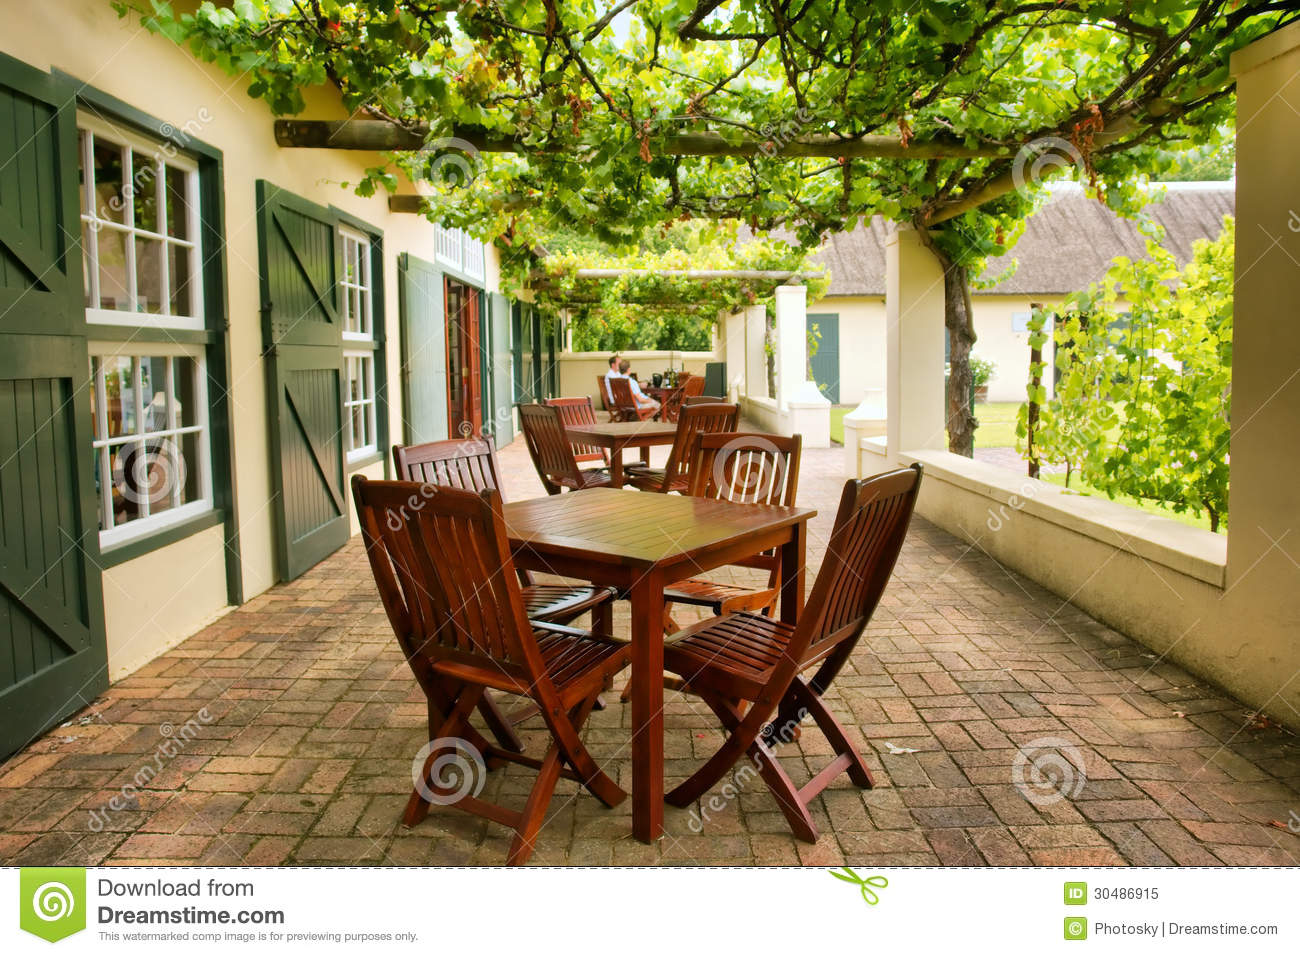 Tables on terrace covered by grape vine royalty free stock for 18 terrace street orange ma